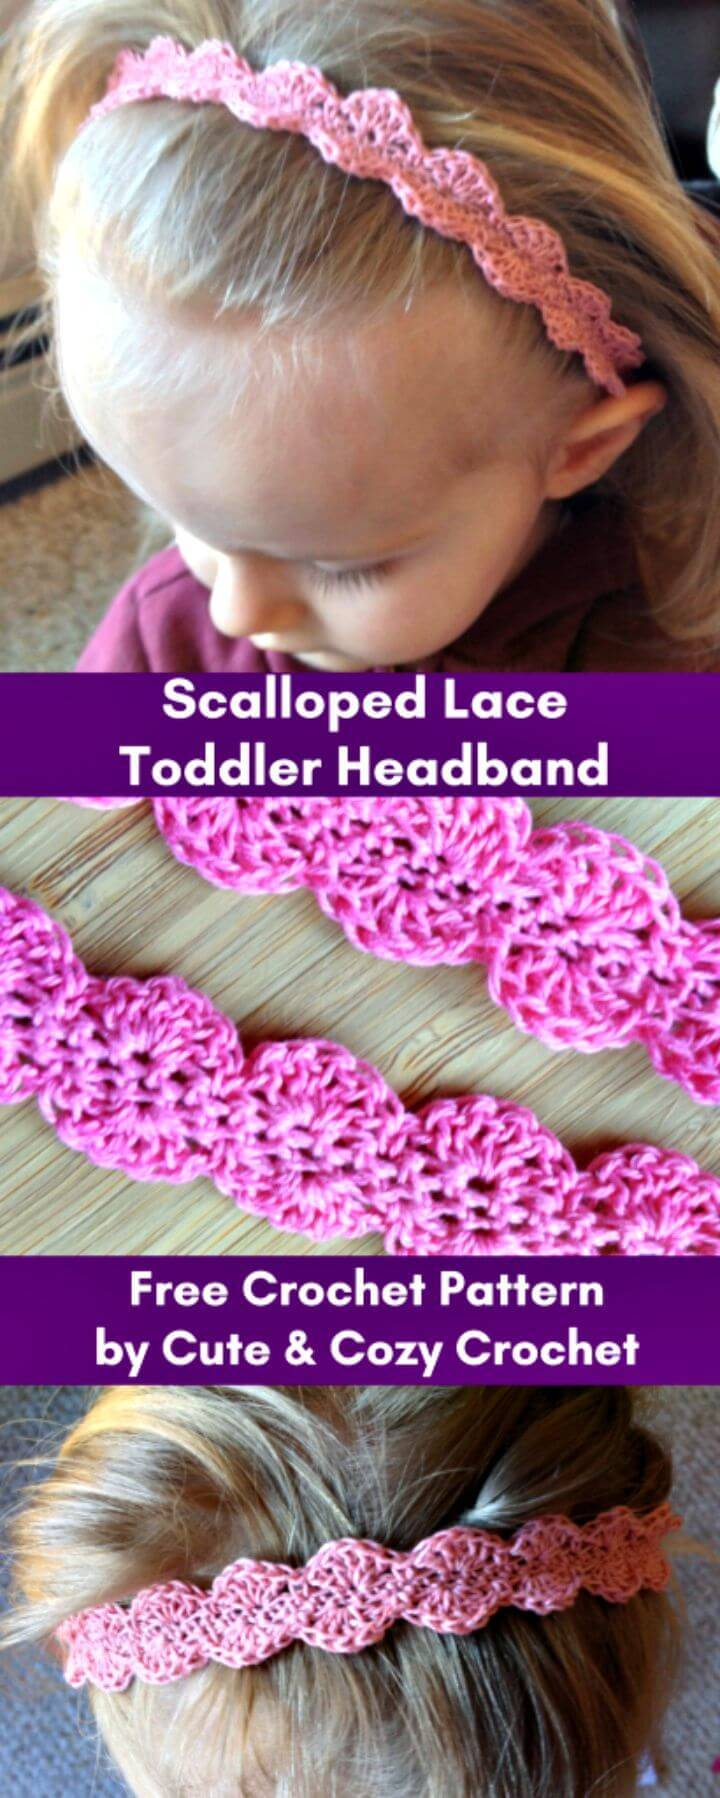 Easy Free Crochet Scalloped Lace Toddler Headband Pattern